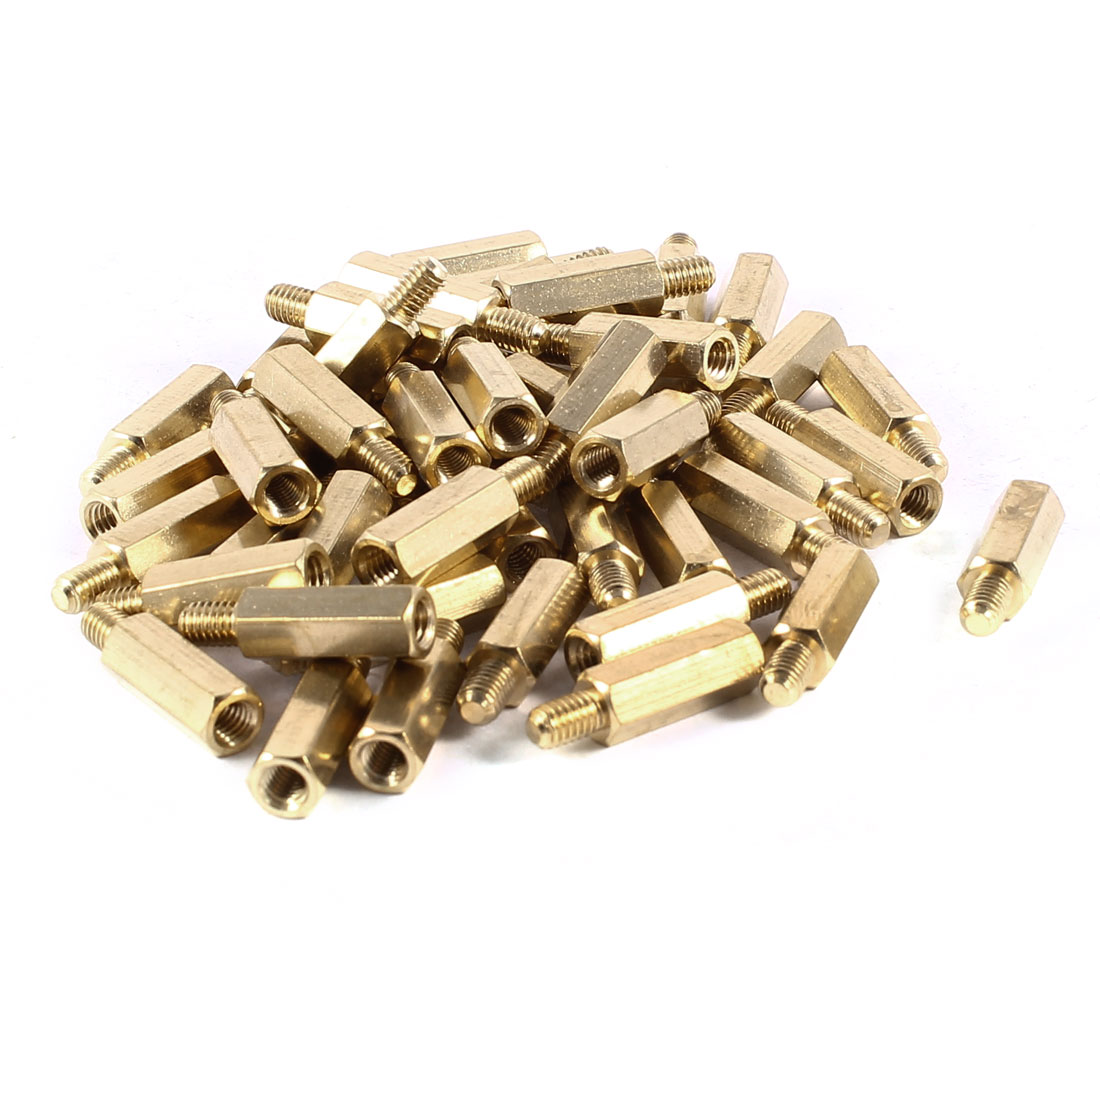 50 Pcs Brass Hex Standoff Spacer M4x16mm Female to M4x6mm Male M4 16+6mm